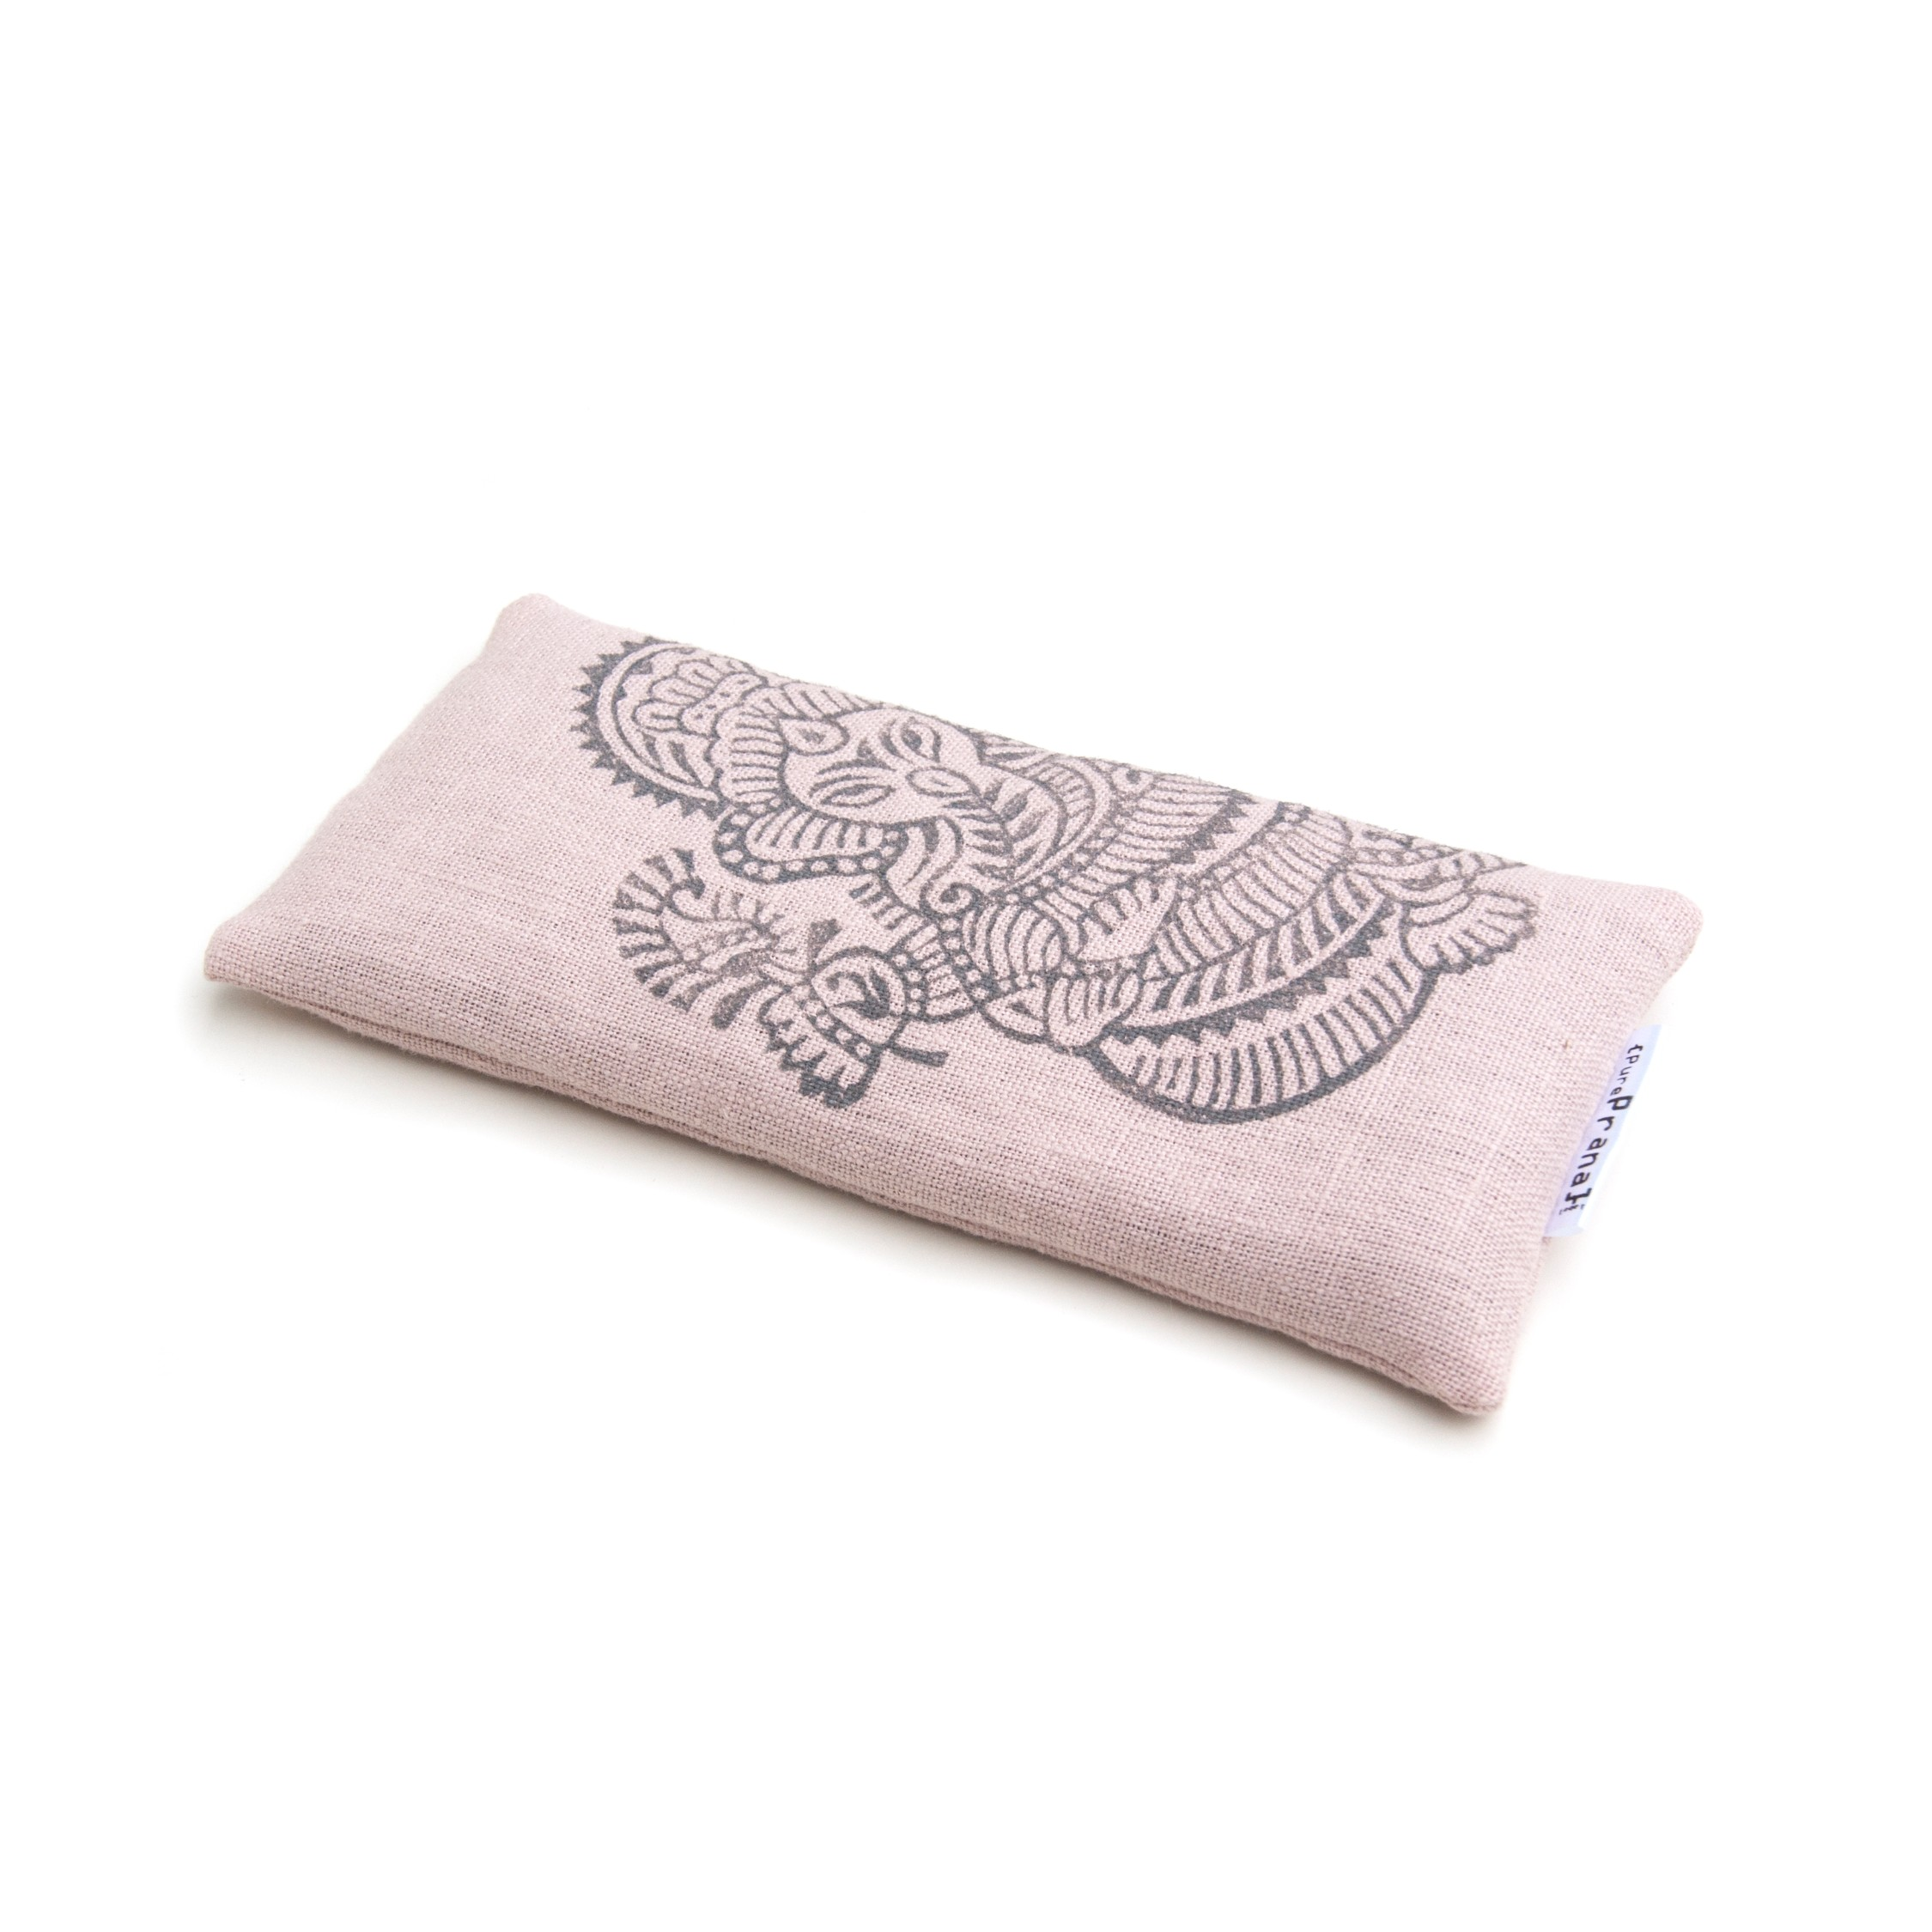 Ganesh yoga eye pillow in pink